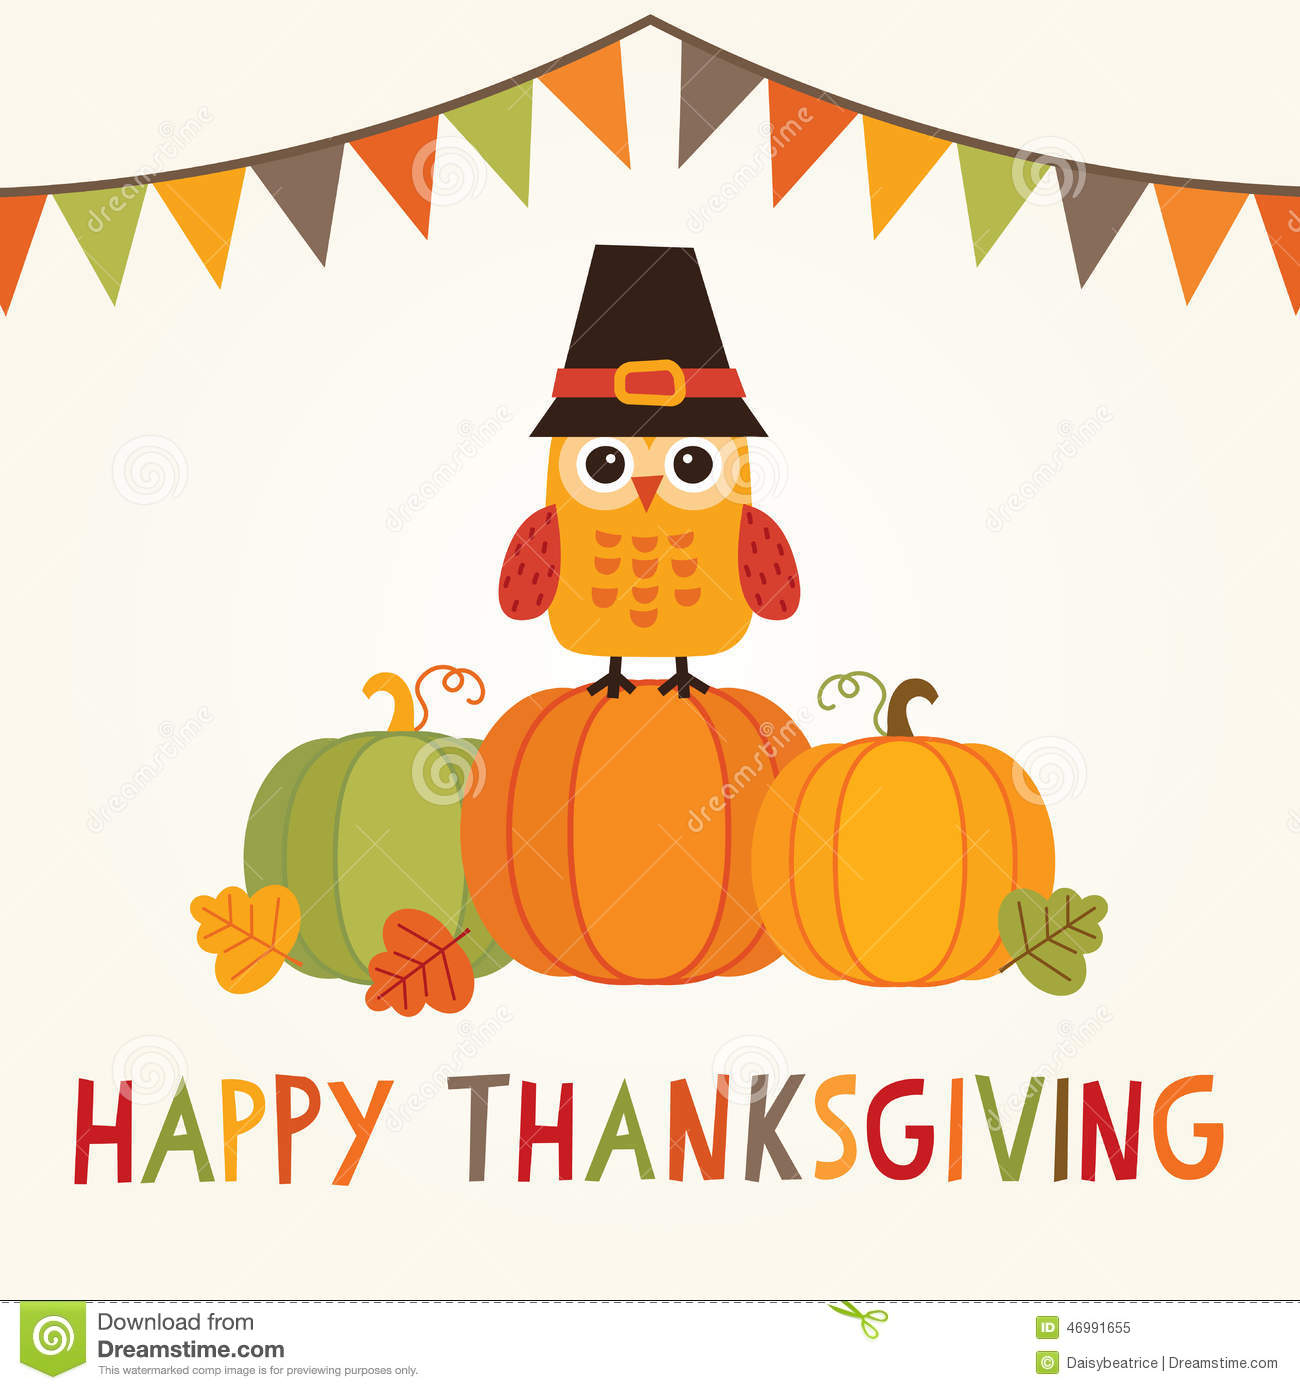 free clip art images thanksgiving - photo #24